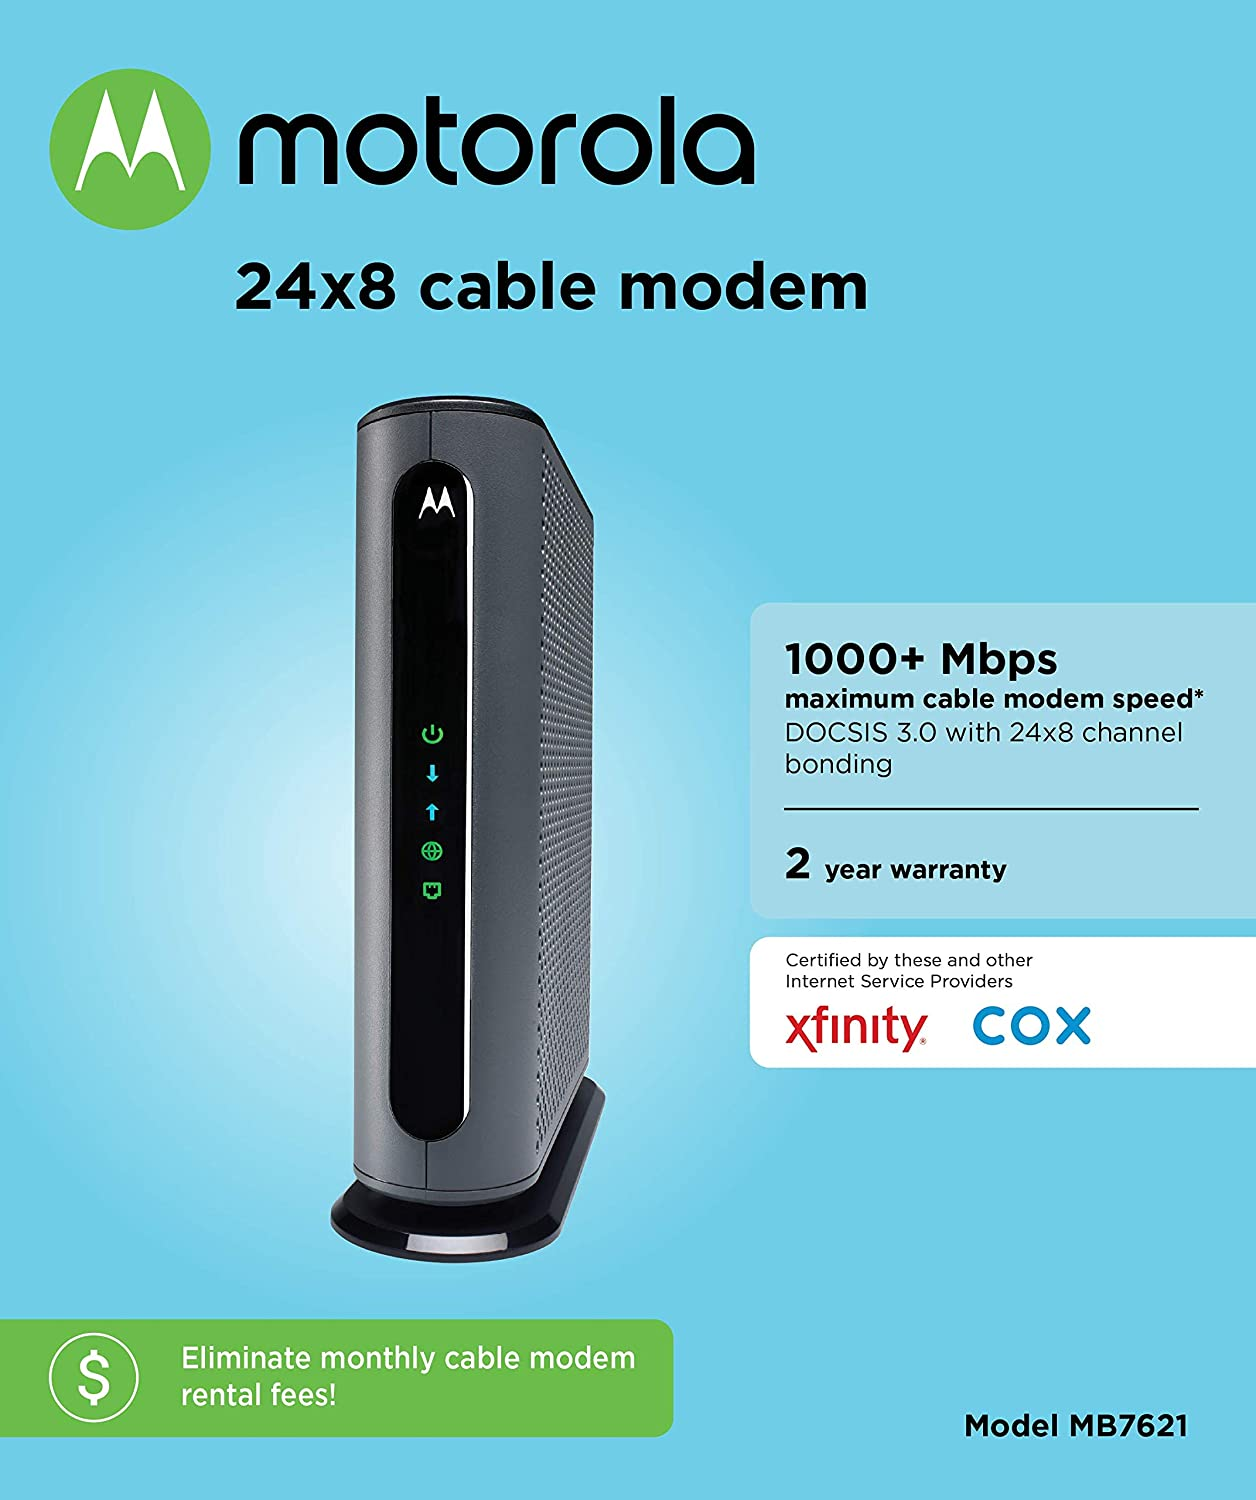 MOTOROLA 24x8 Cable Modem, Model MB7621, DOCSIS 3 0  Approved by Comcast  Xfinity, Cox, Charter Spectrum, Time Warner Cable, and More  Downloads  1,000